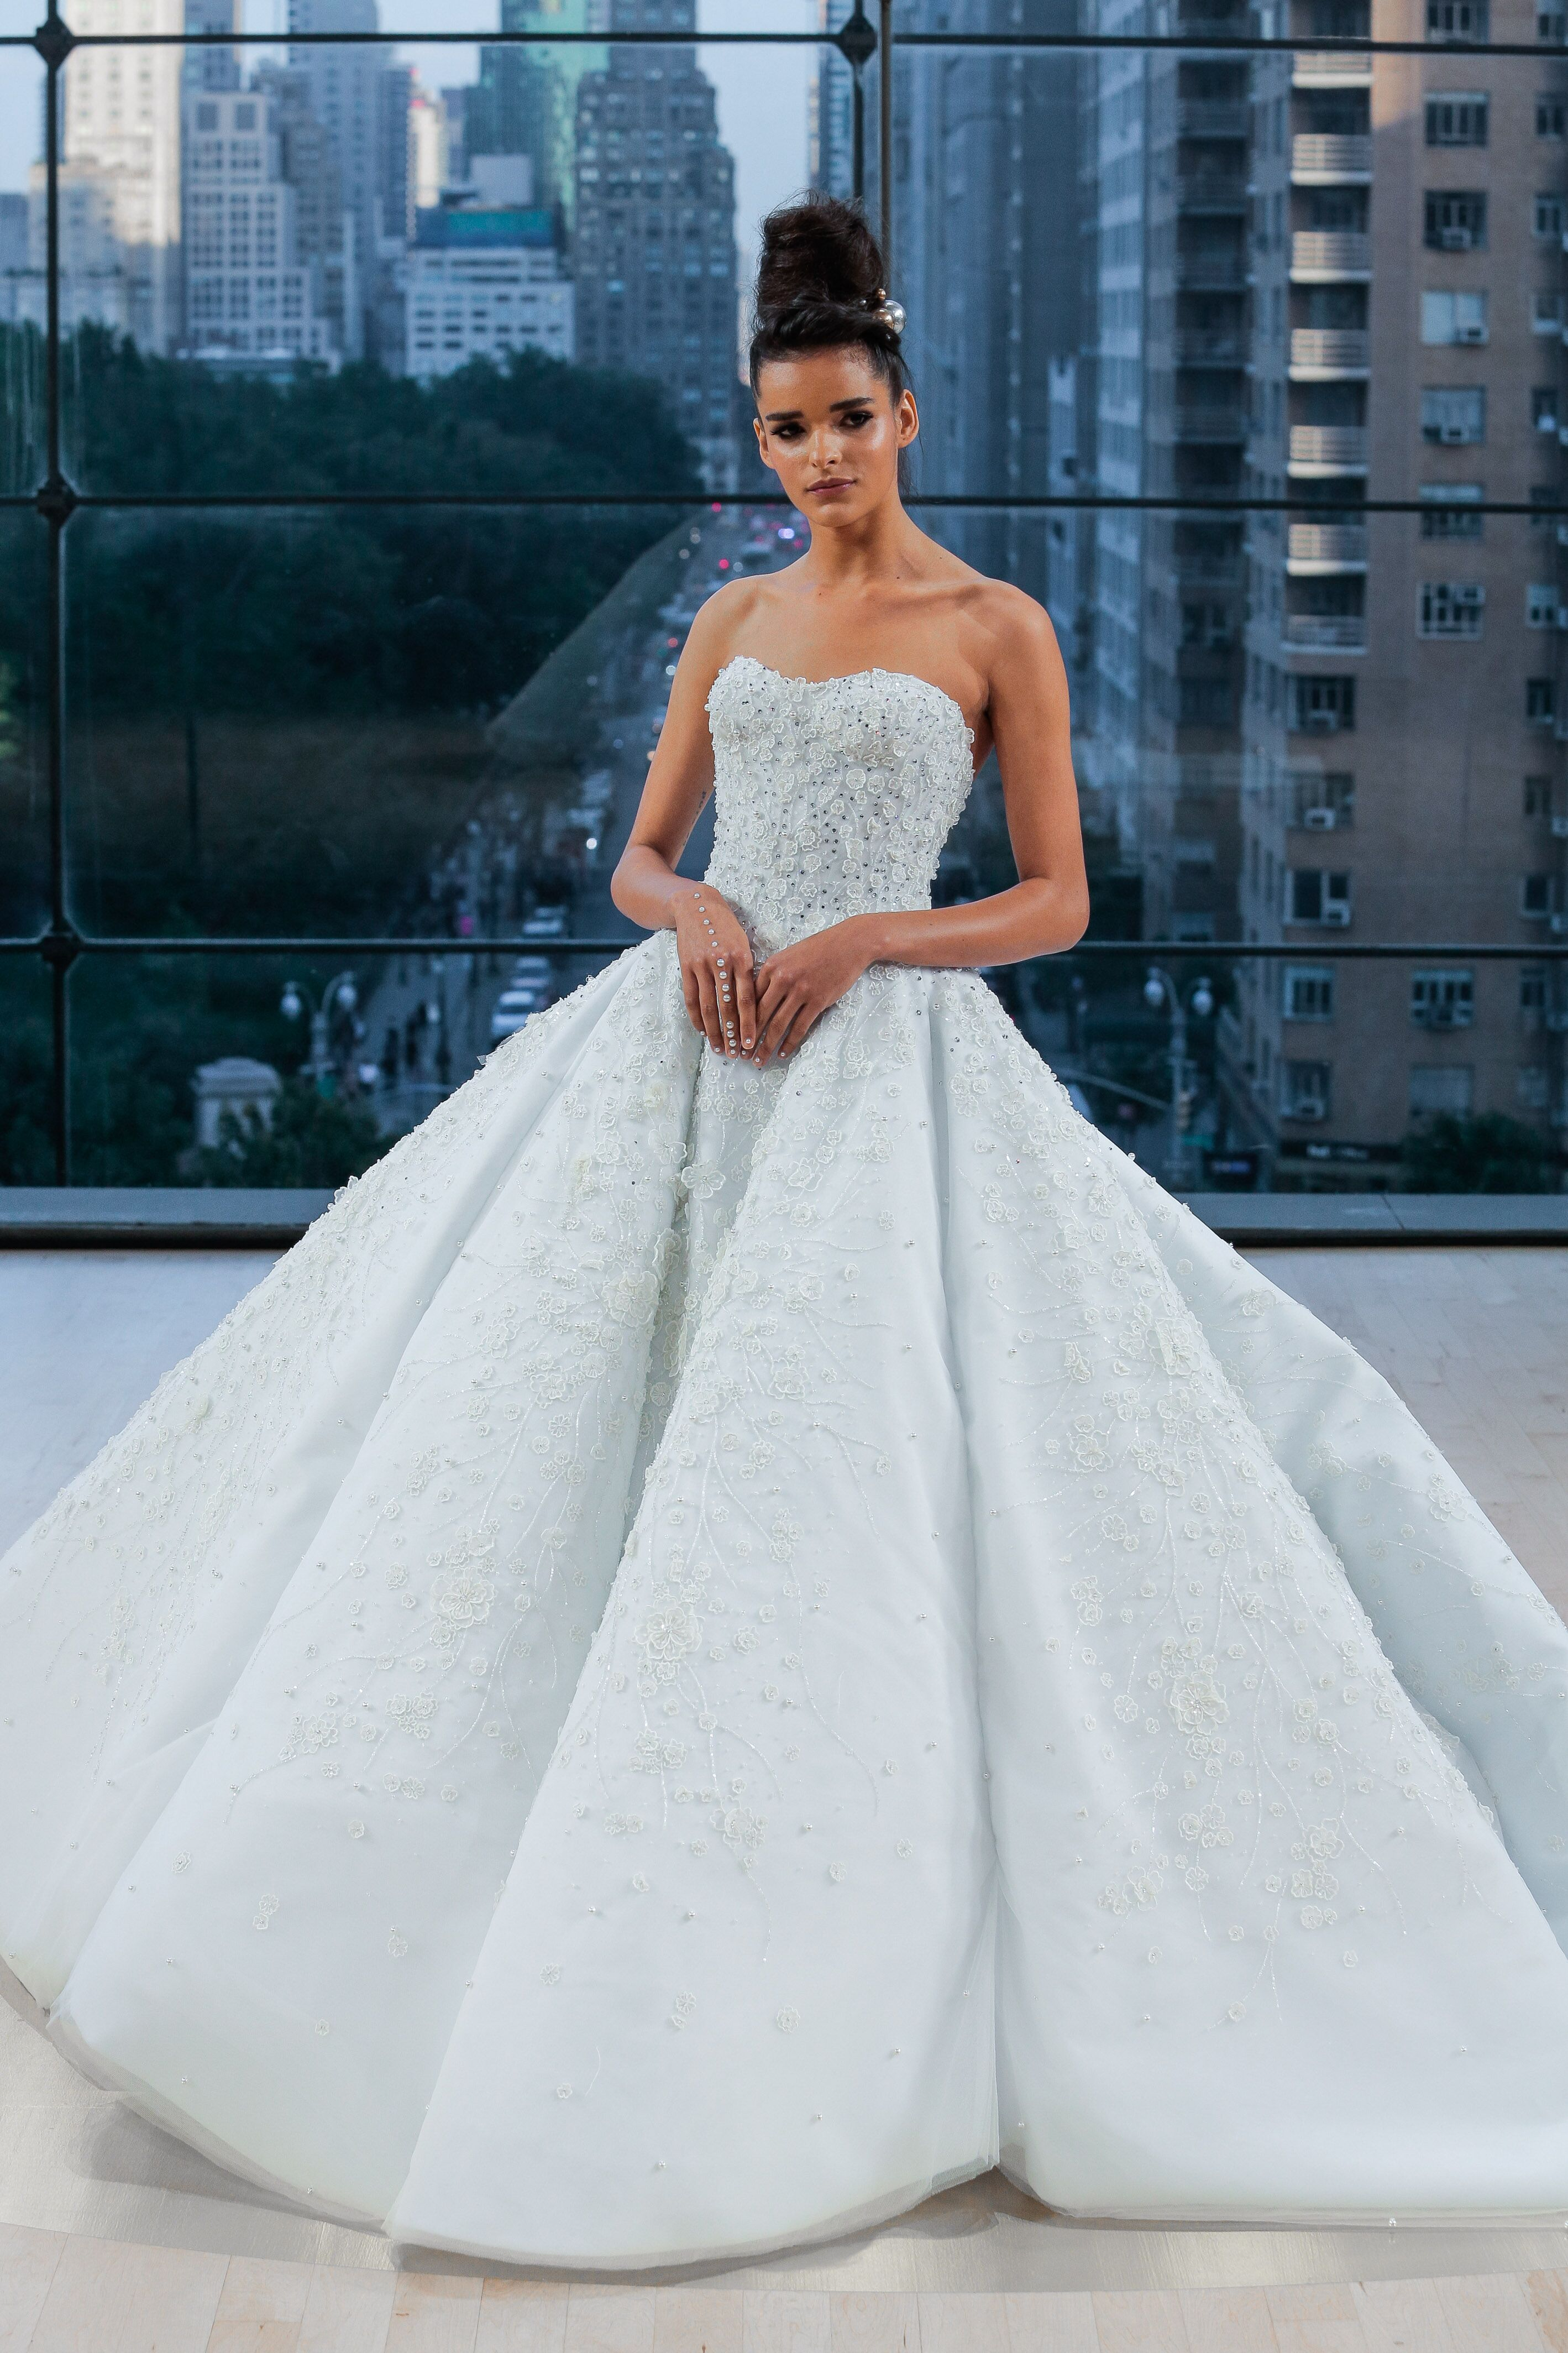 White Prom Dresses In Toronto 10 Wedding Dress Stores In Toronto Ontario 36